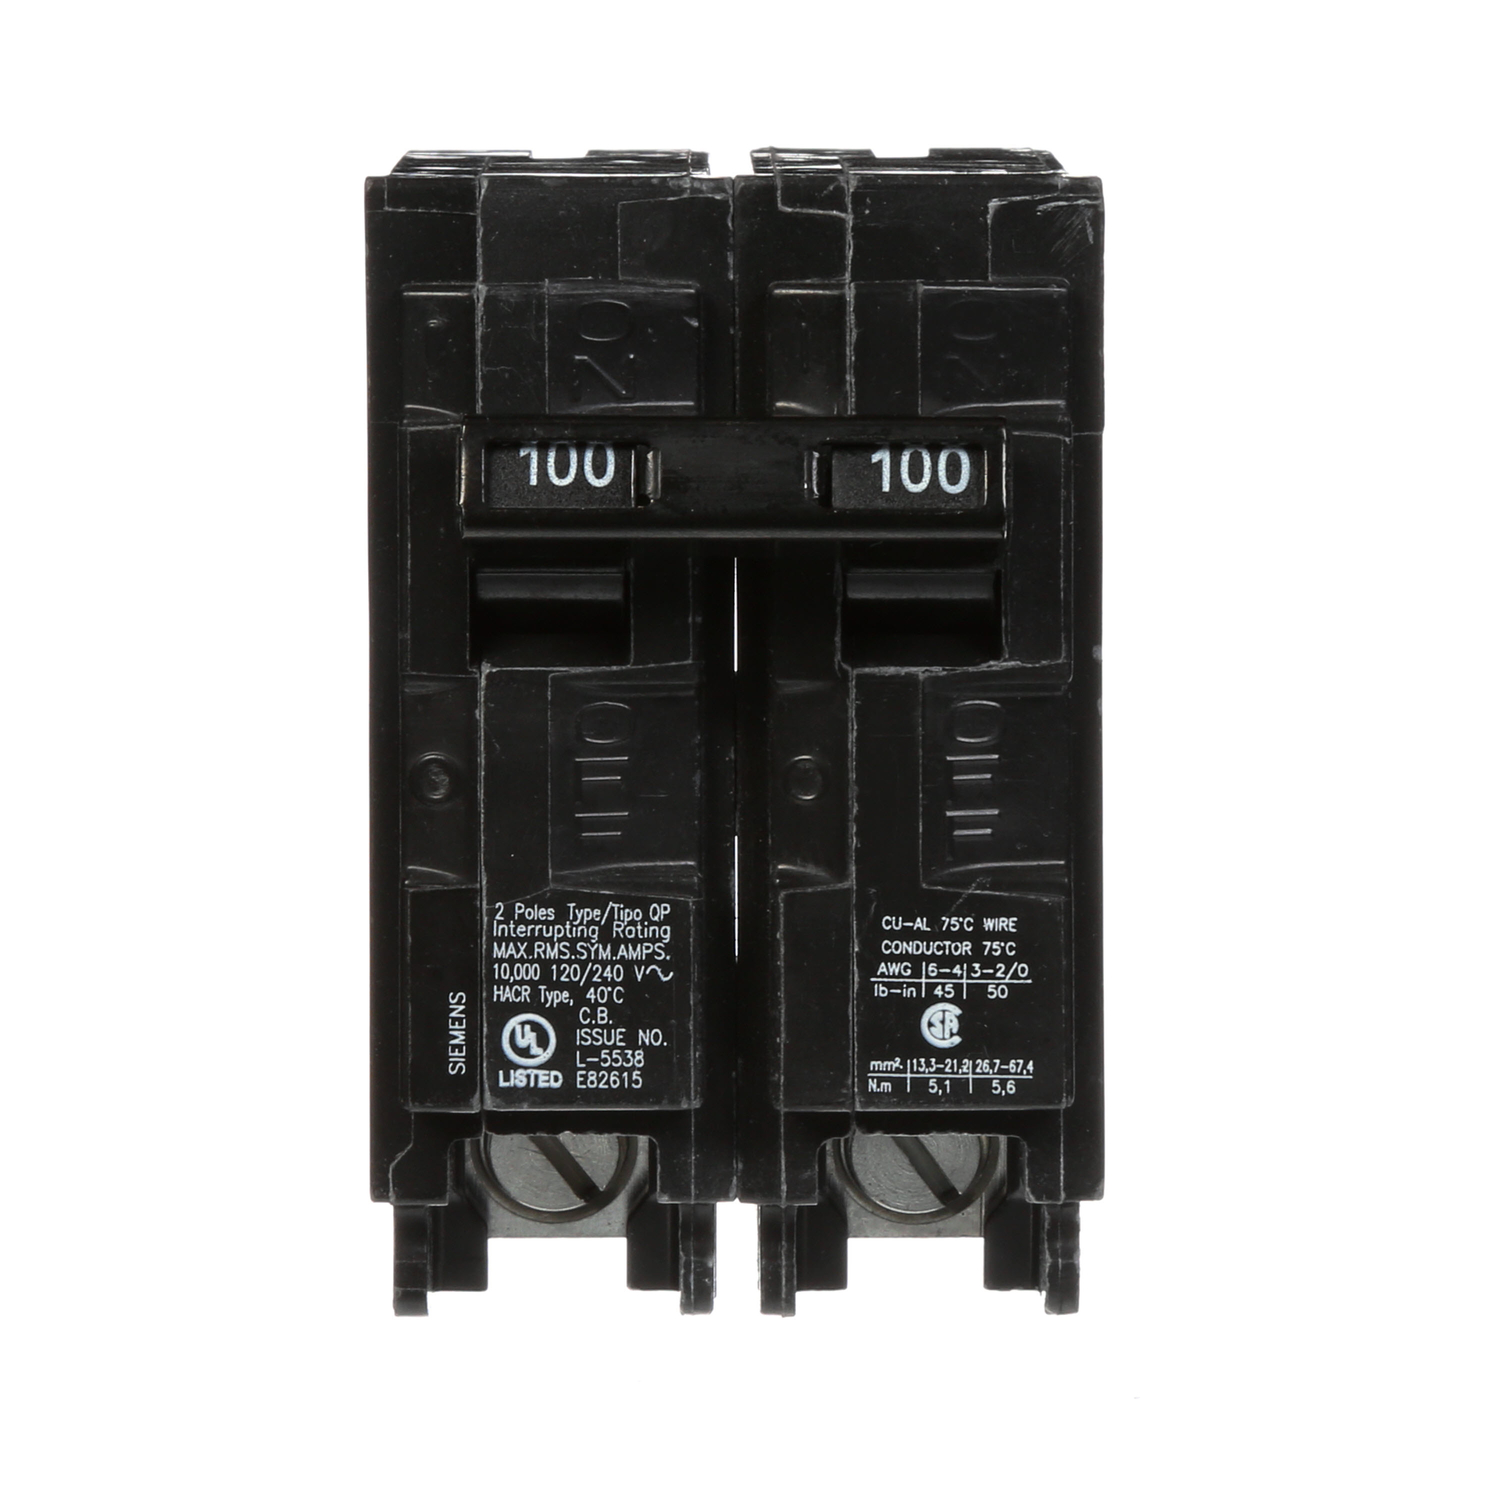 Fuse Box Circuit Breaker Types Electrical Wiring Diagrams Household Electric Residential Old Boxes Blank Opening